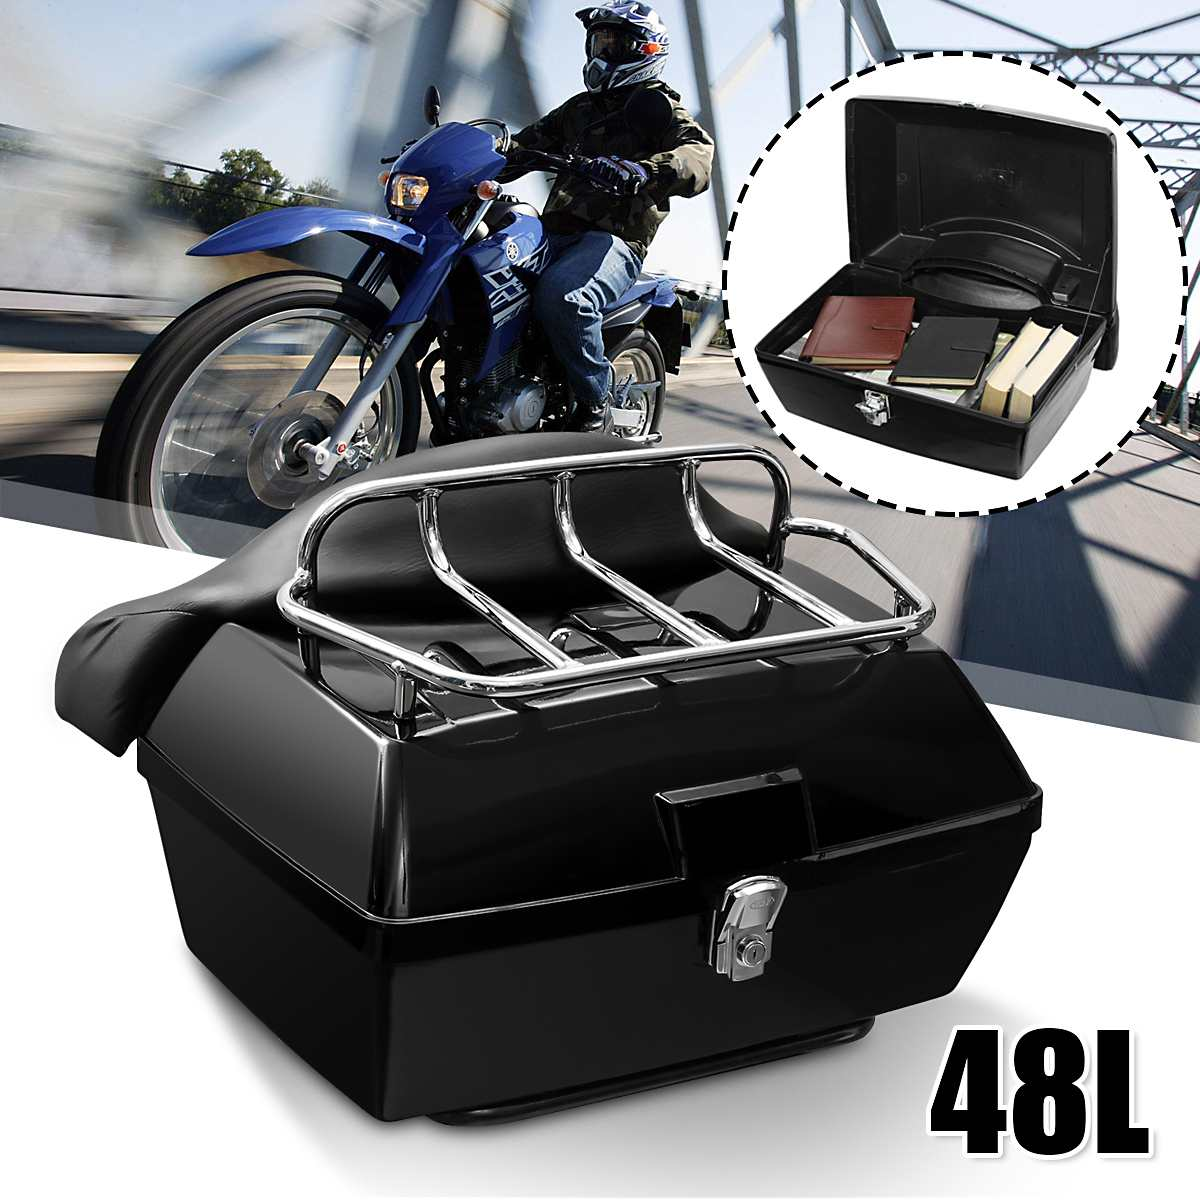 48L Universal Motorcycle Rear Tail Storage Box Luggage Trunk Case Toolbox Scooter Motorbike For Halley Honda Suzuki Yamaha BMW